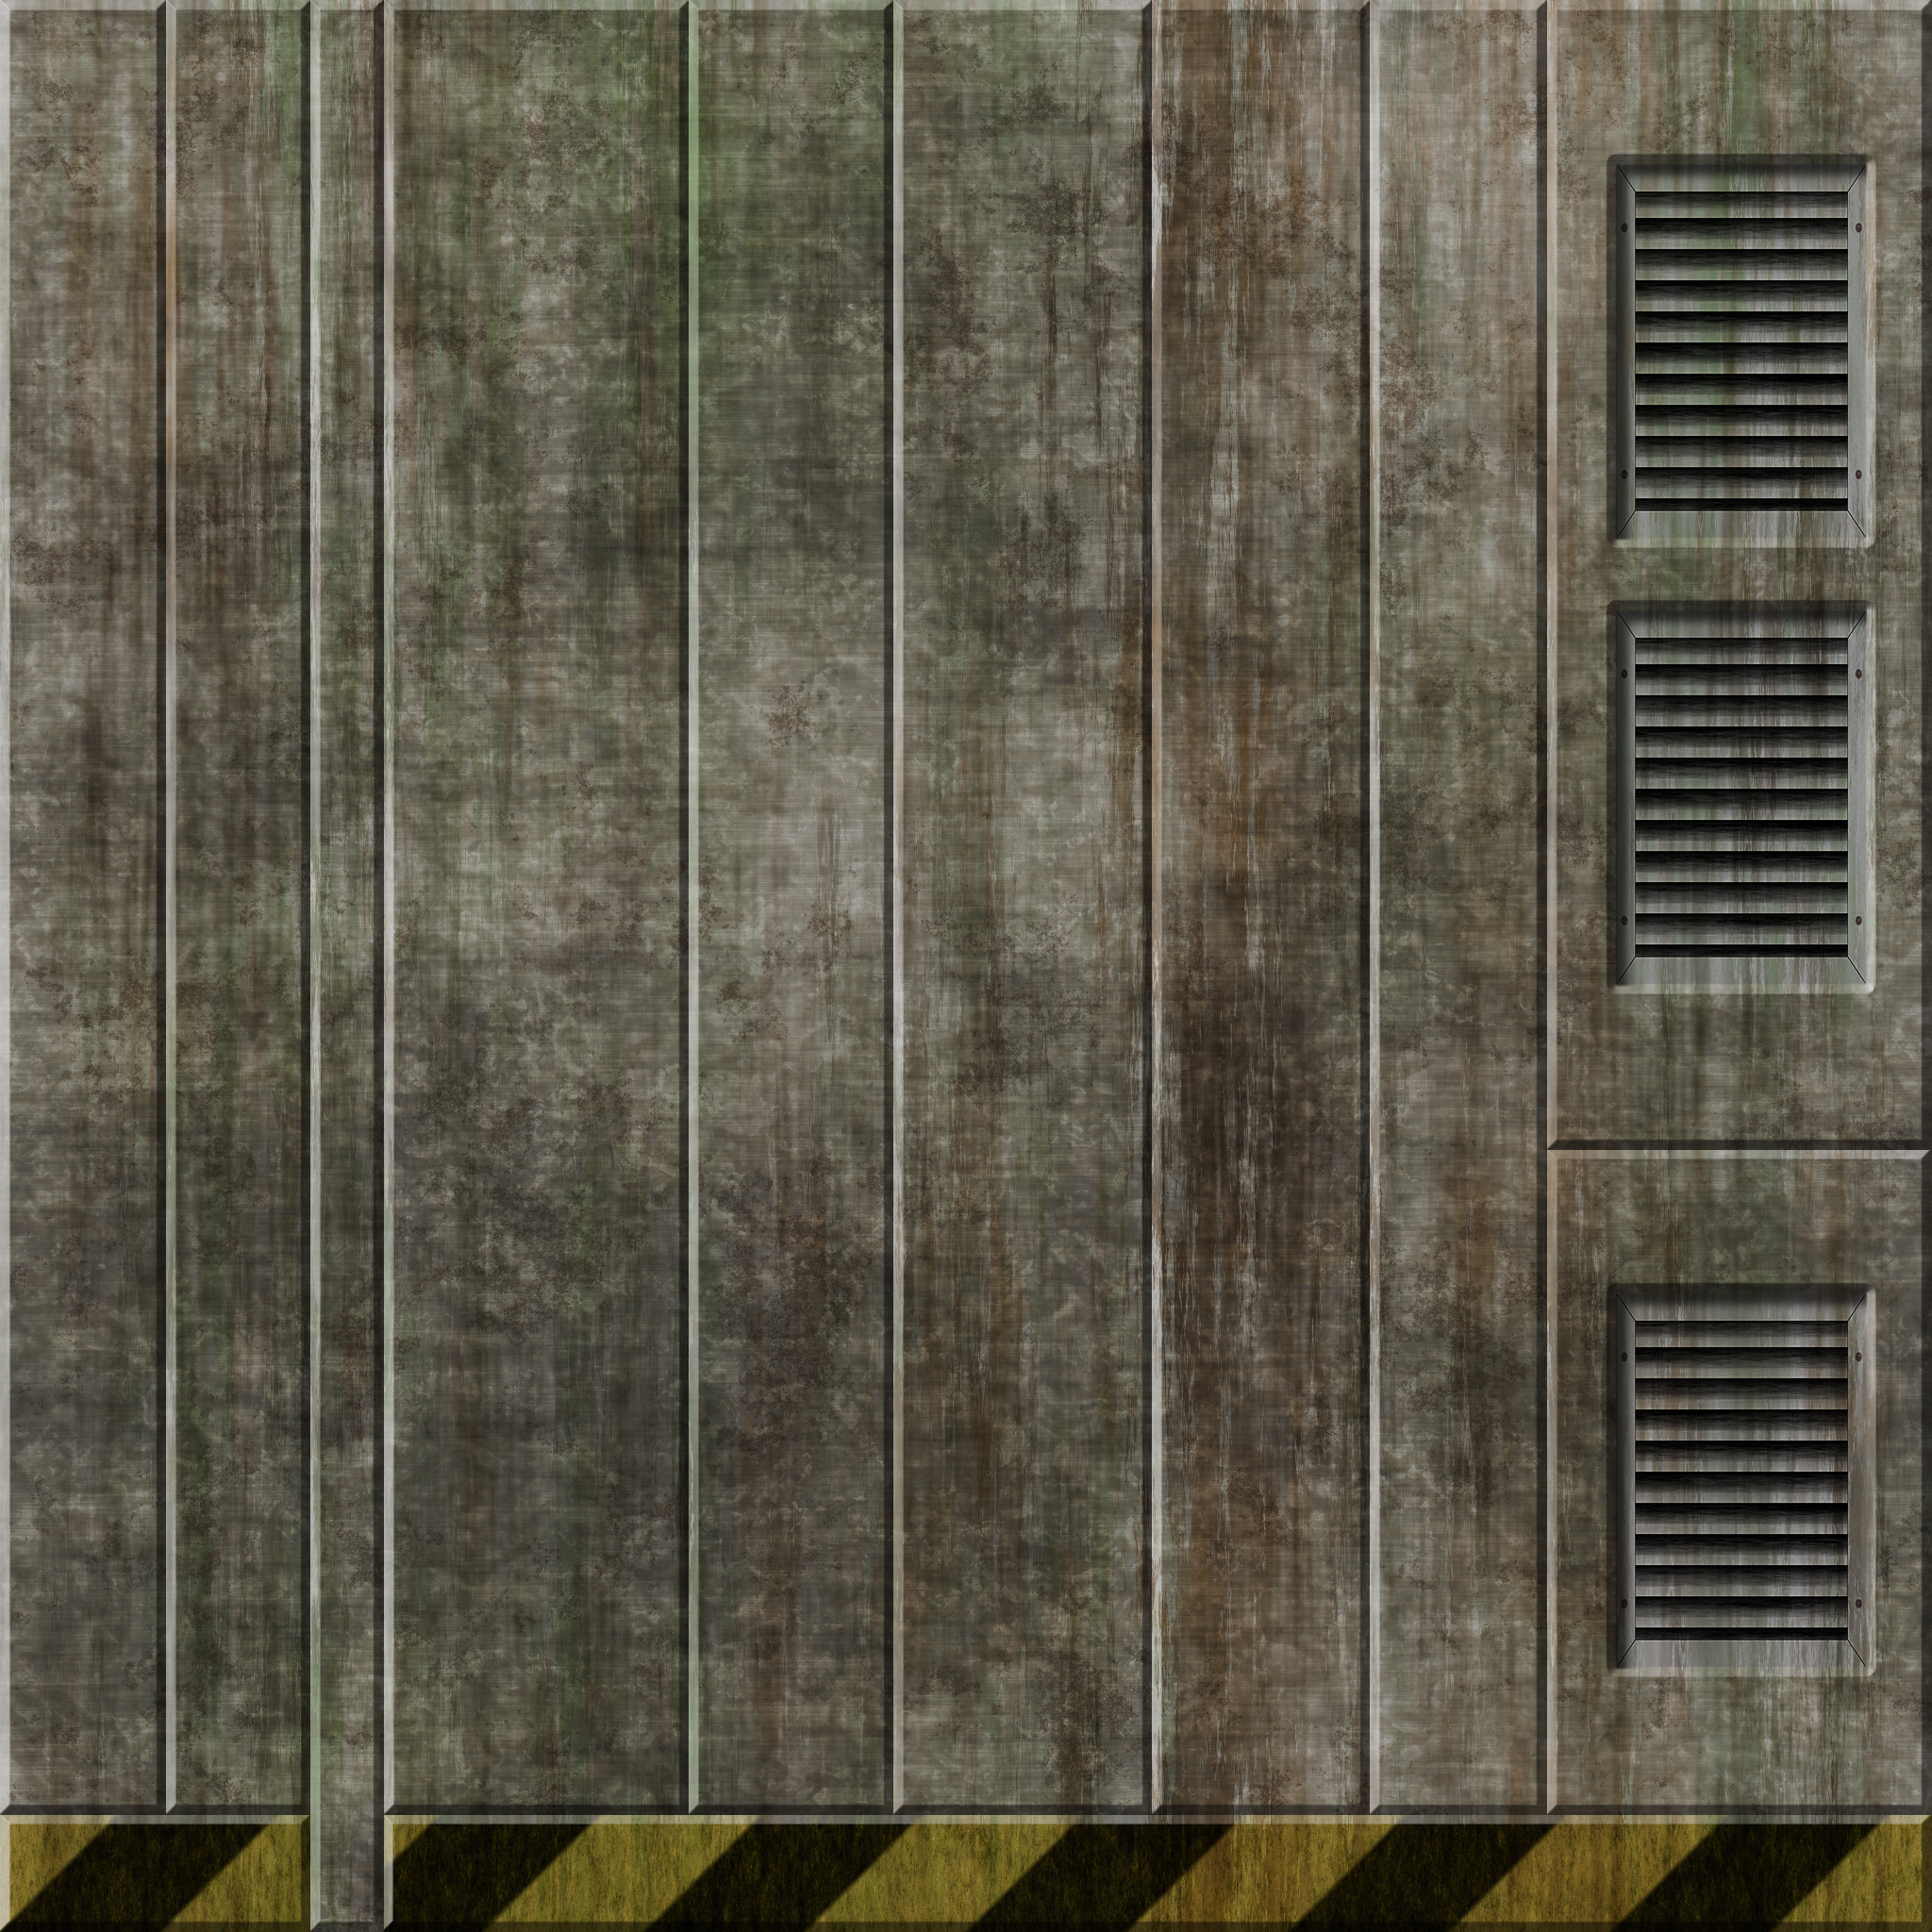 Cement Wall 6 Remake by Hoover1979